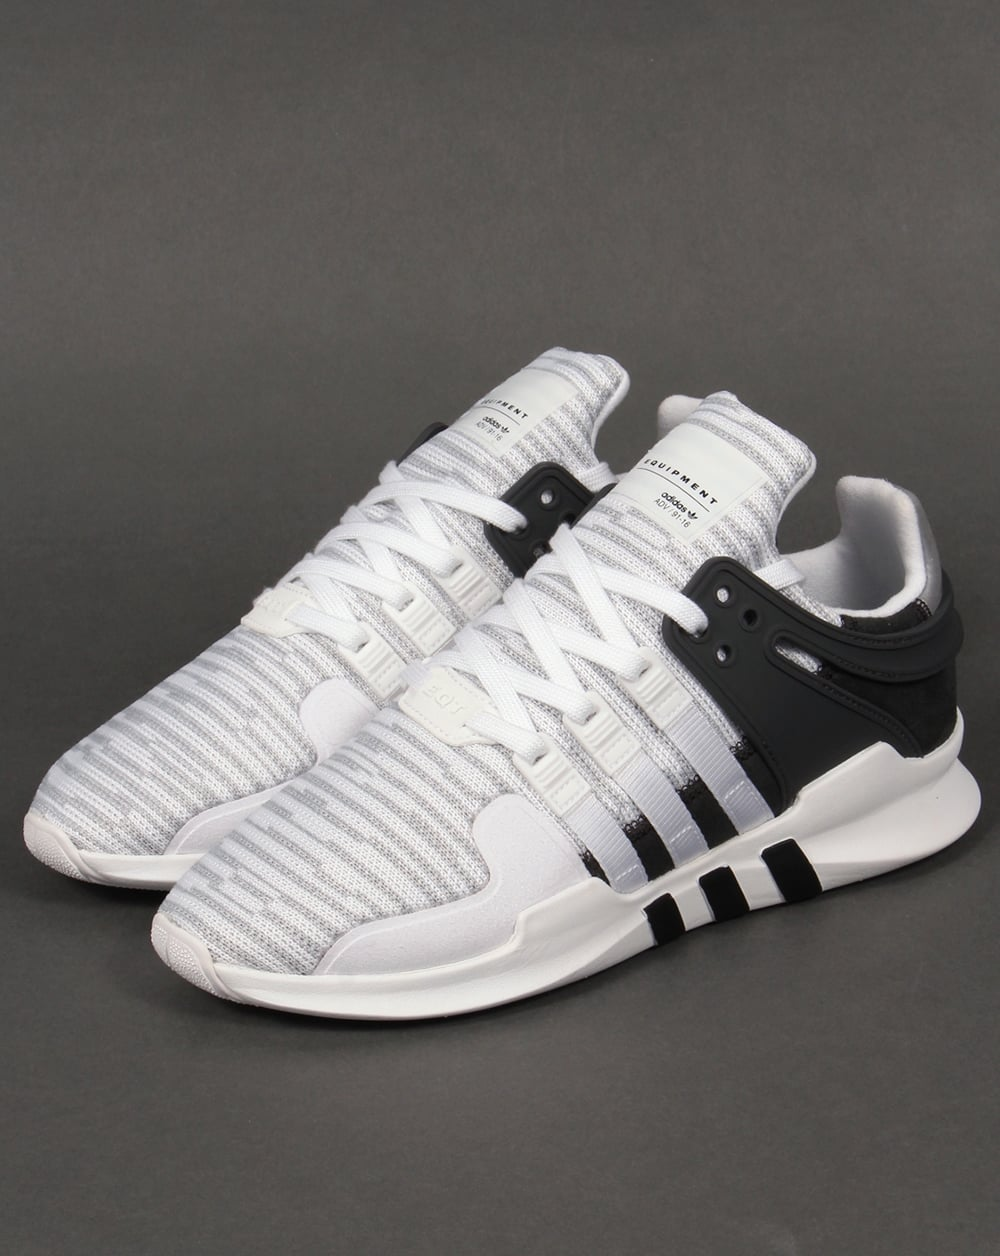 Now Available: adidas EQT Support 93/17 Boost